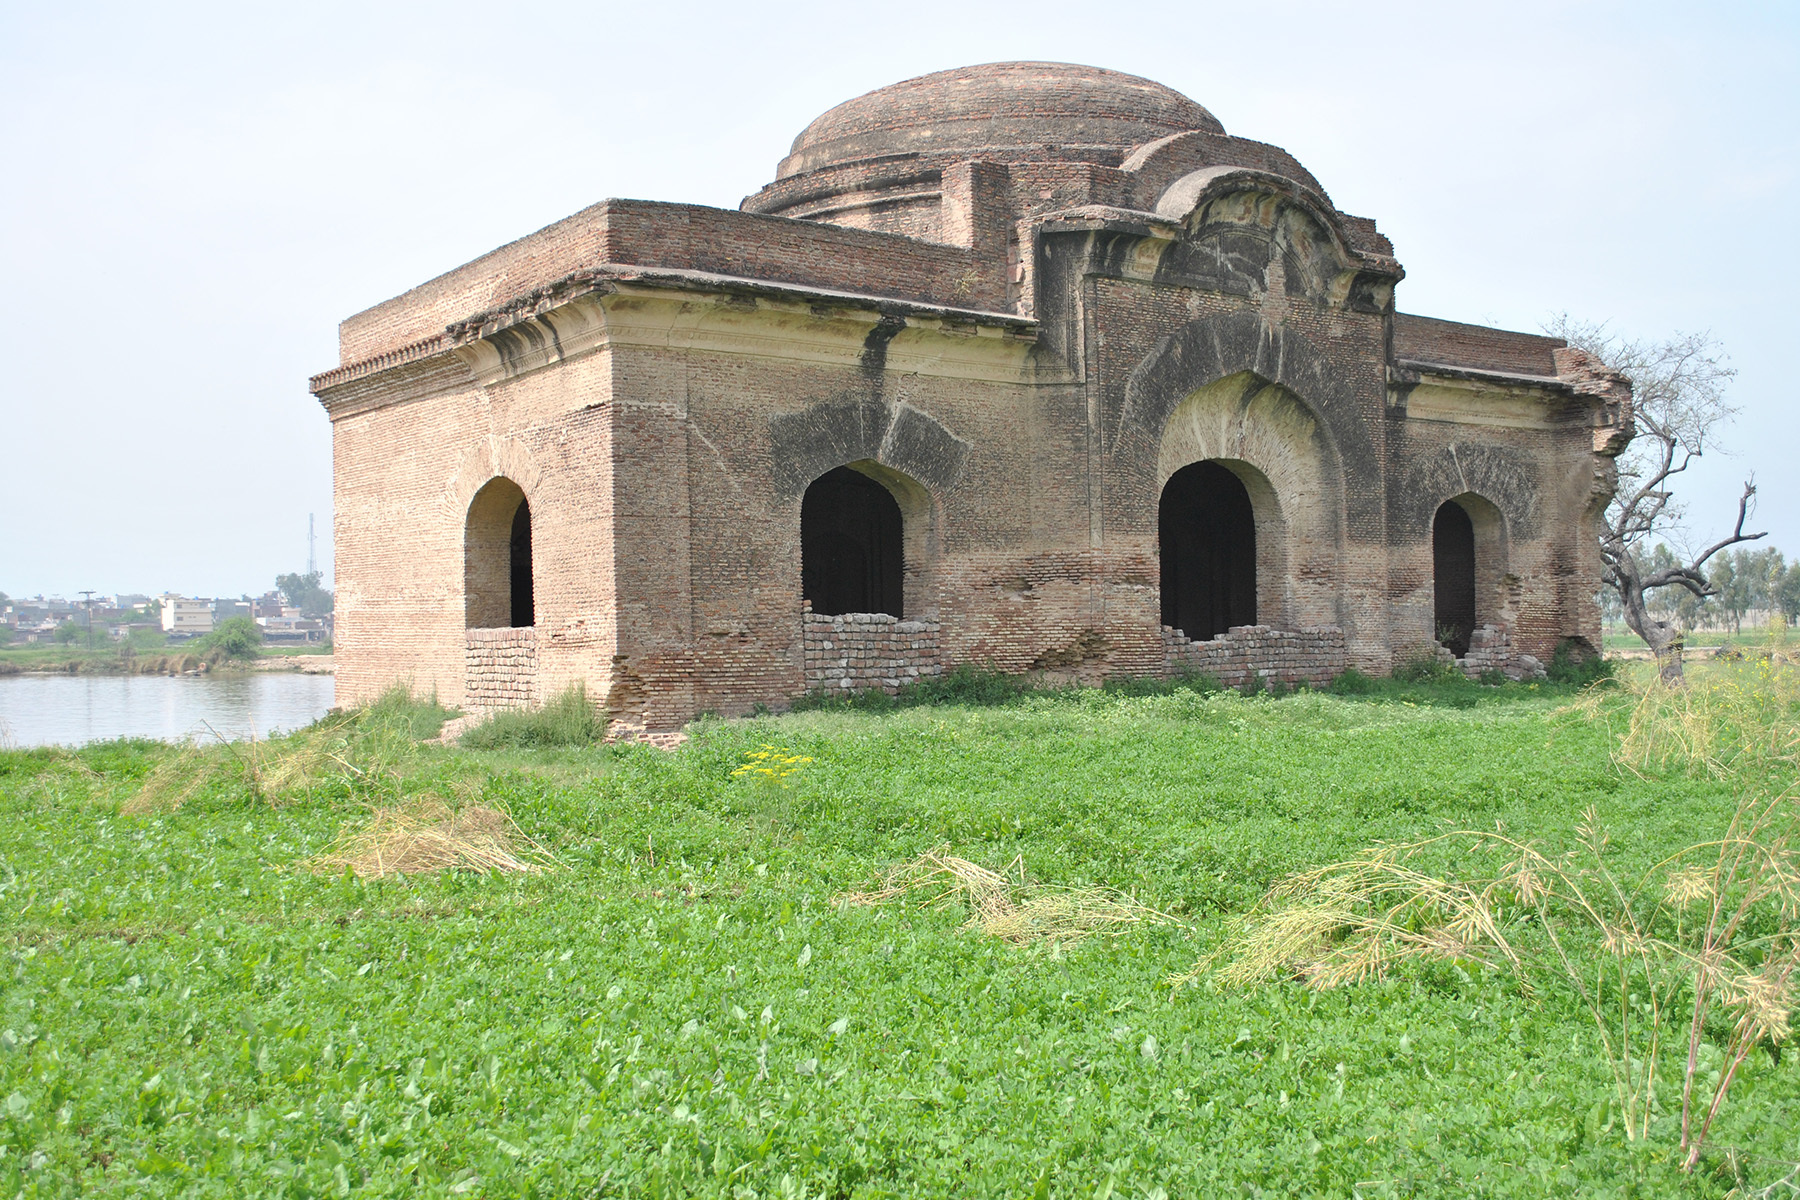 The mosque located in eastern vicinity of Eminabad is attributed to the Lodhi period, which makes it one of the oldest surviving mosques in Pakistan.